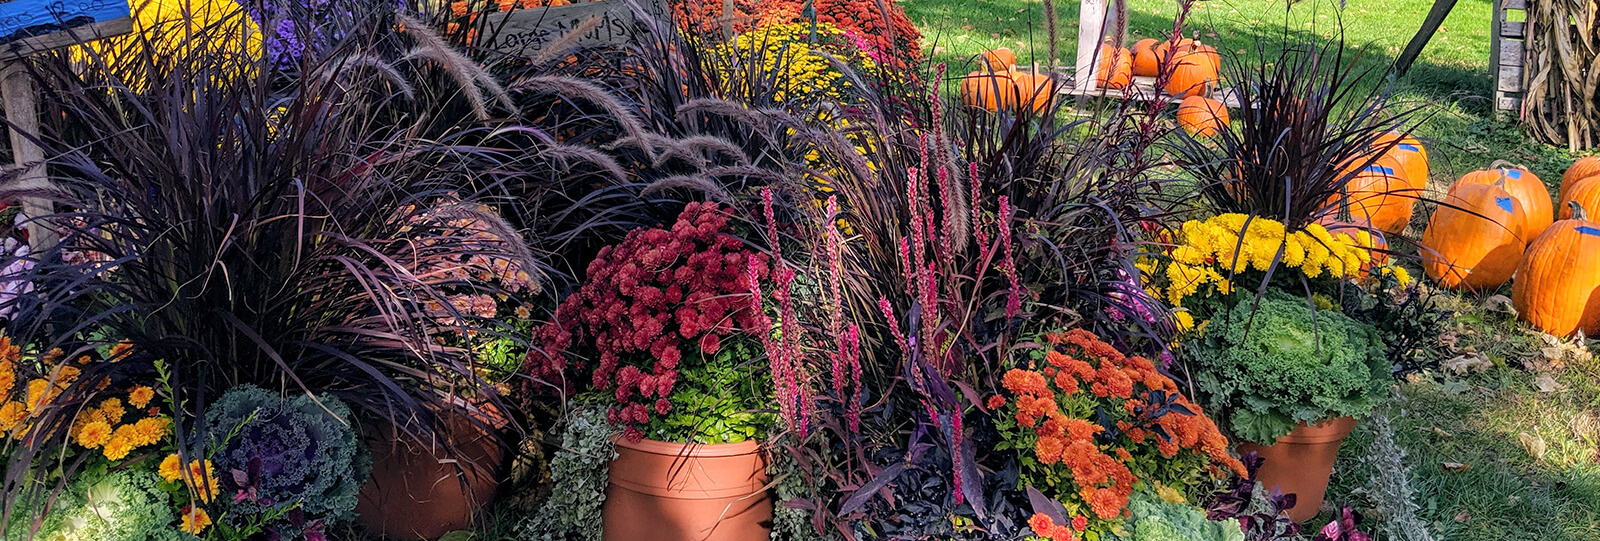 PFAS-fall-planter-boxes-autumn-potted-plants